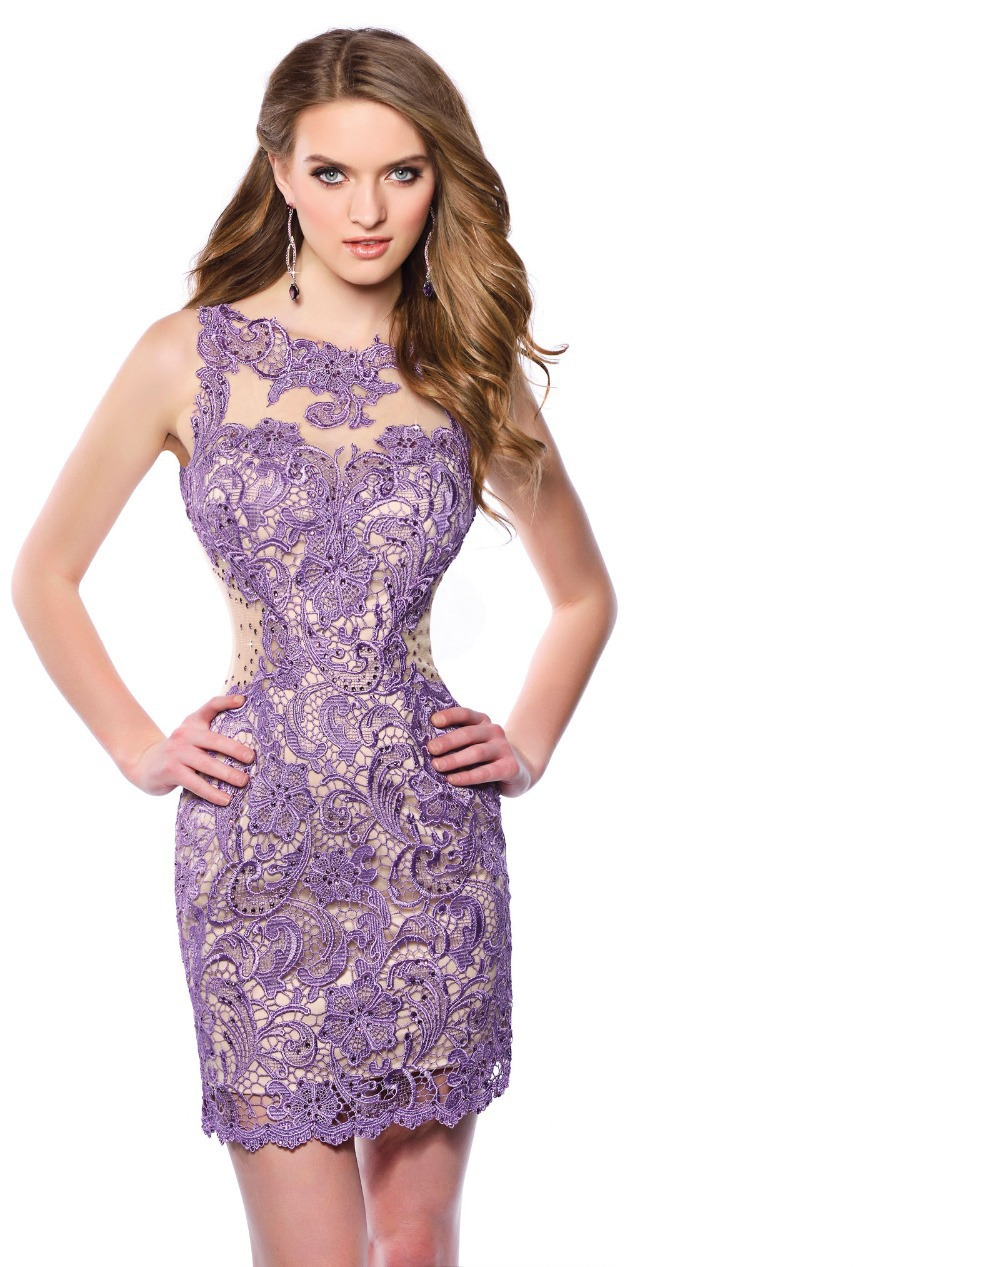 389035fe4ba2a Get Quotations · Lilac   Lavender Short Lace Homecoming Dresses 2015 Scoop  Neckline Beaded Sheer Backless Homecoming Dress Women